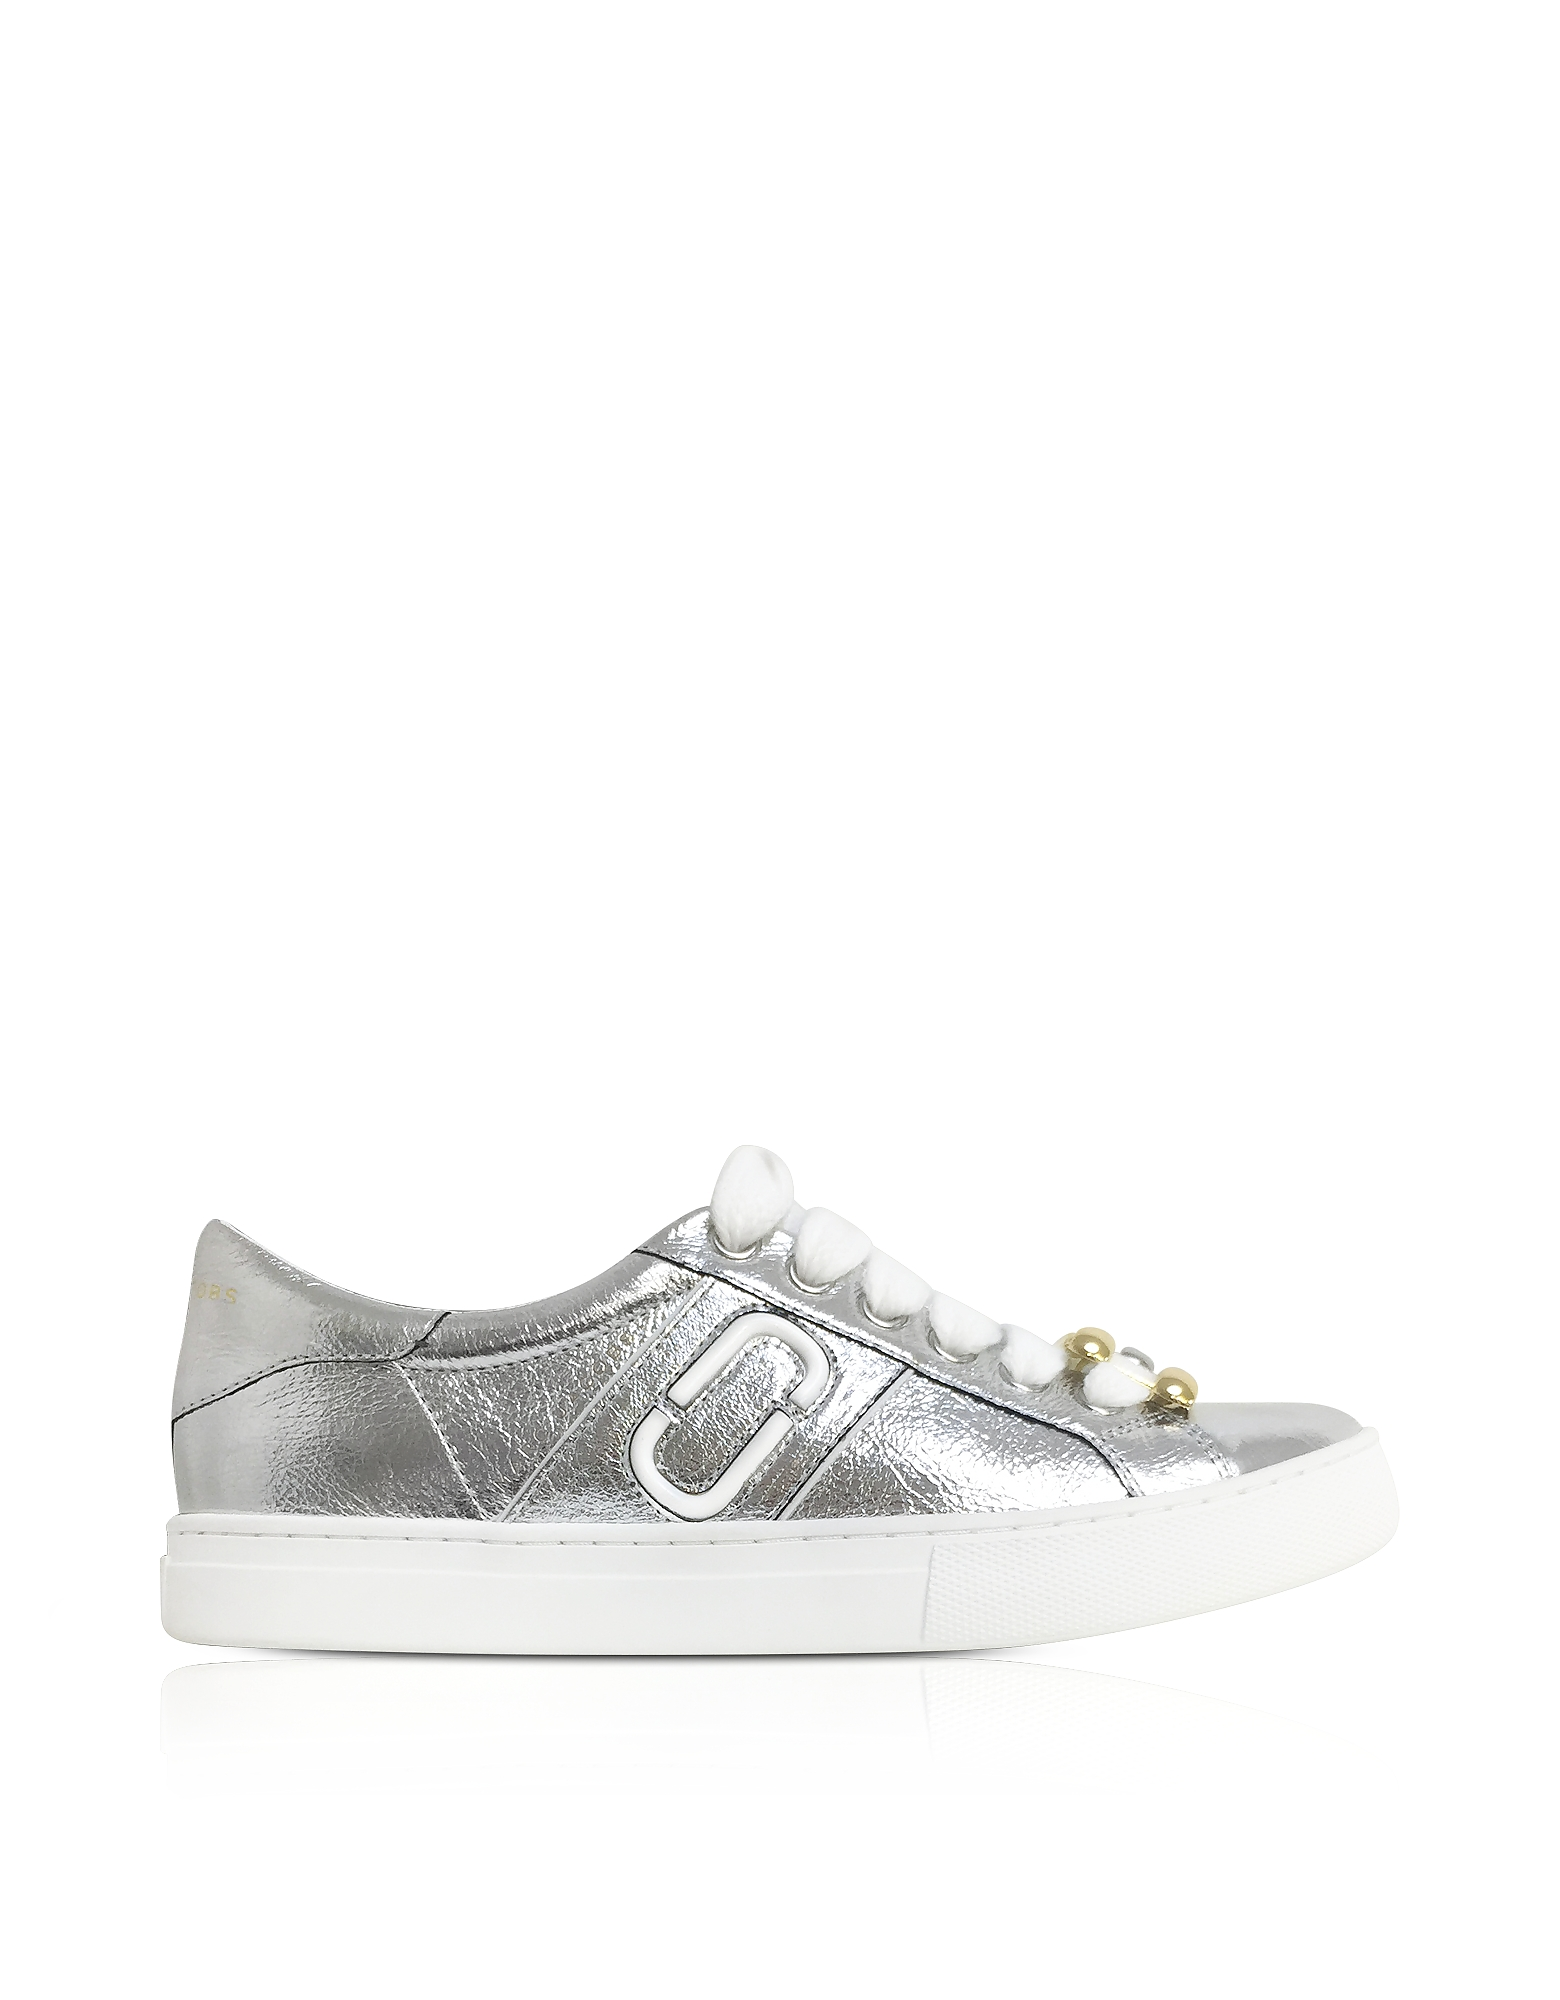 Marc Jacobs Silver Leather Empire Chain Link Low Top Sneakers